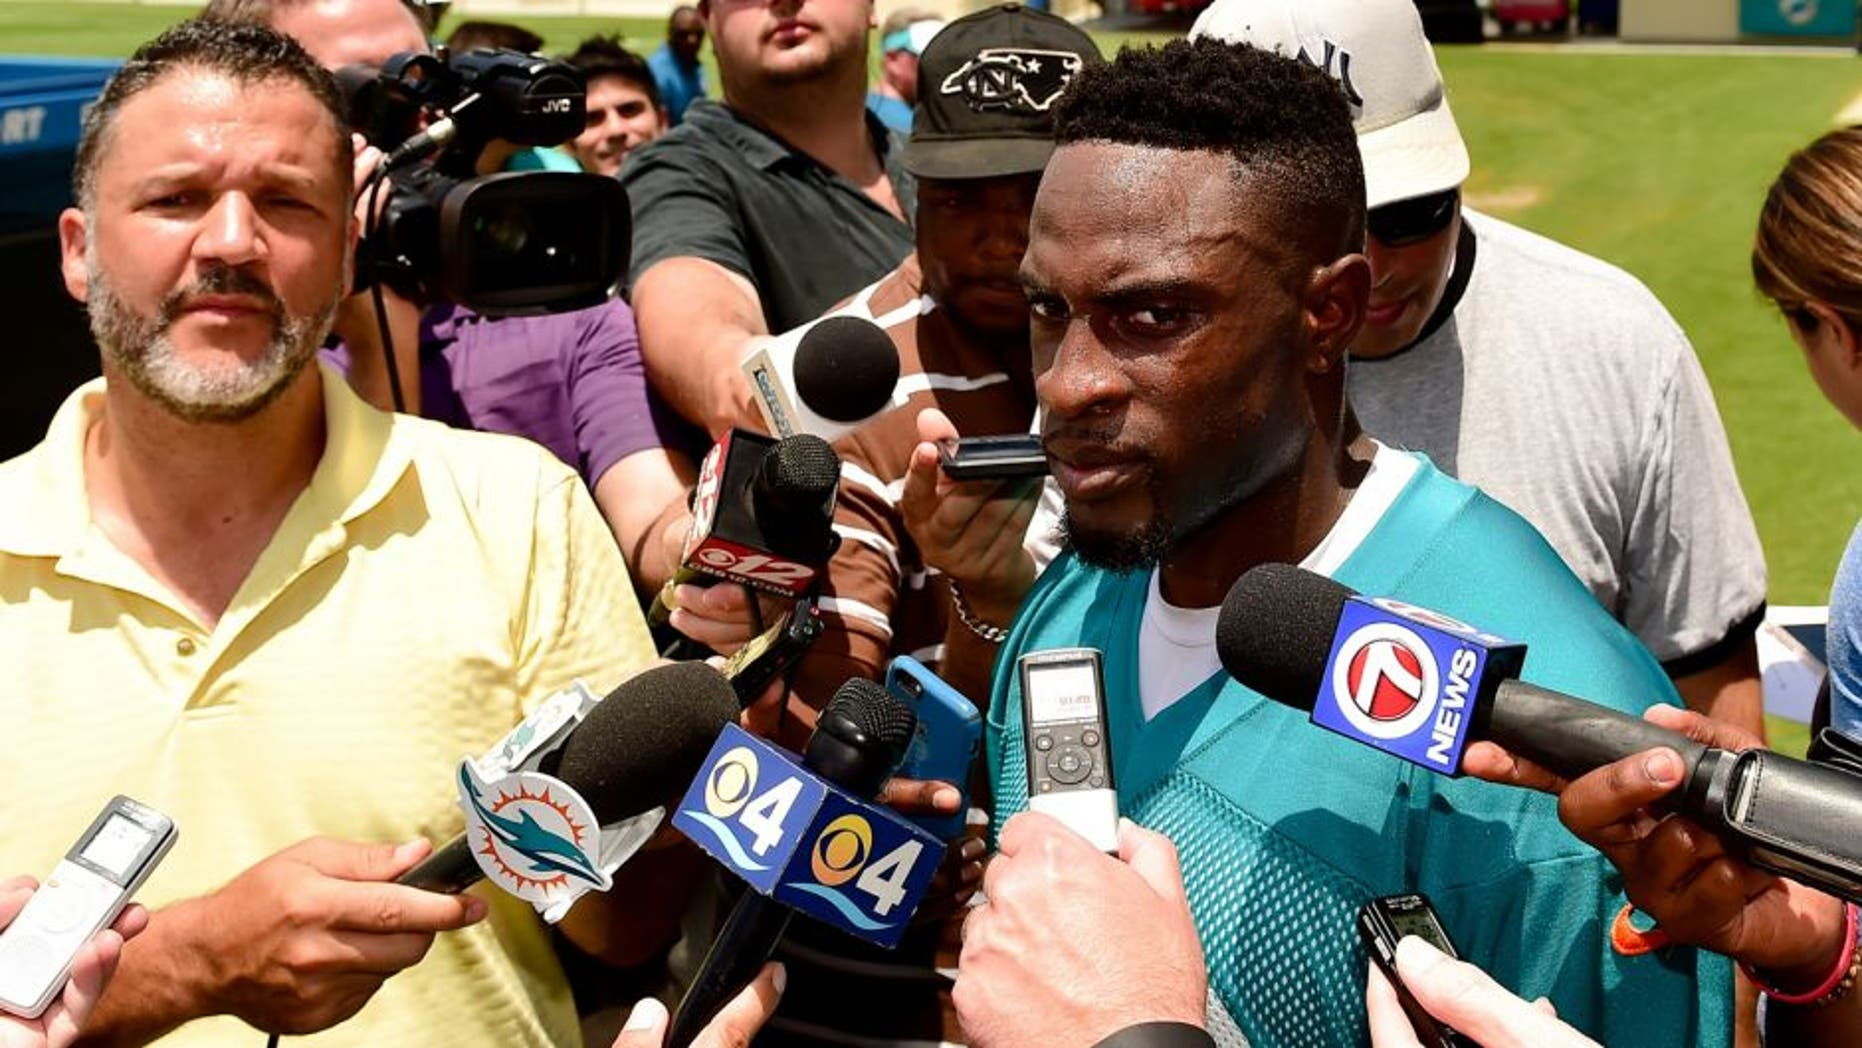 coJun 14, 2016; Miami Gardens, FL, USA; Miami Dolphins corner back Ifo-Ekpre-Olomu (33) talks with reporters after practice at Baptist Health Training Facility at Nova South. Mandatory Credit: Steve Mitchell-USA TODAY Sports